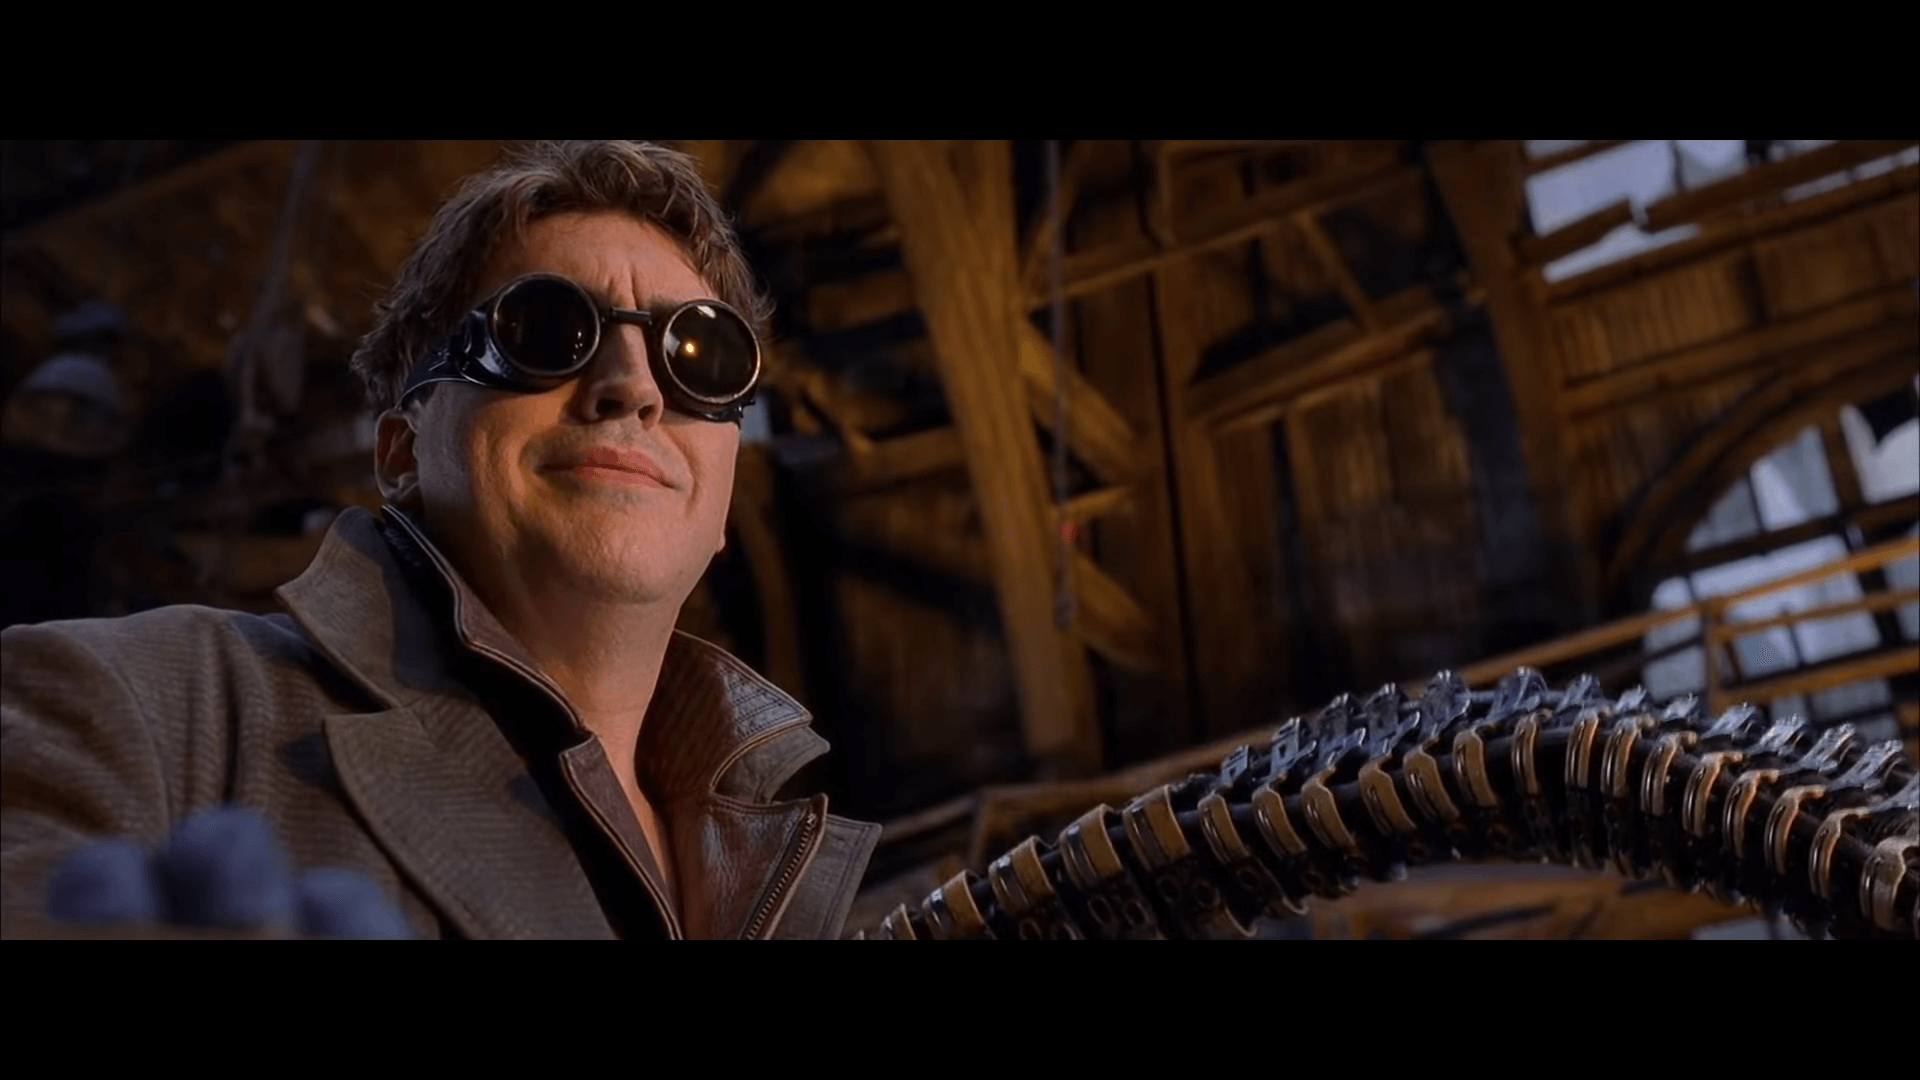 Spider-Man 3 Features Alfred Molina as Doctor Octopus